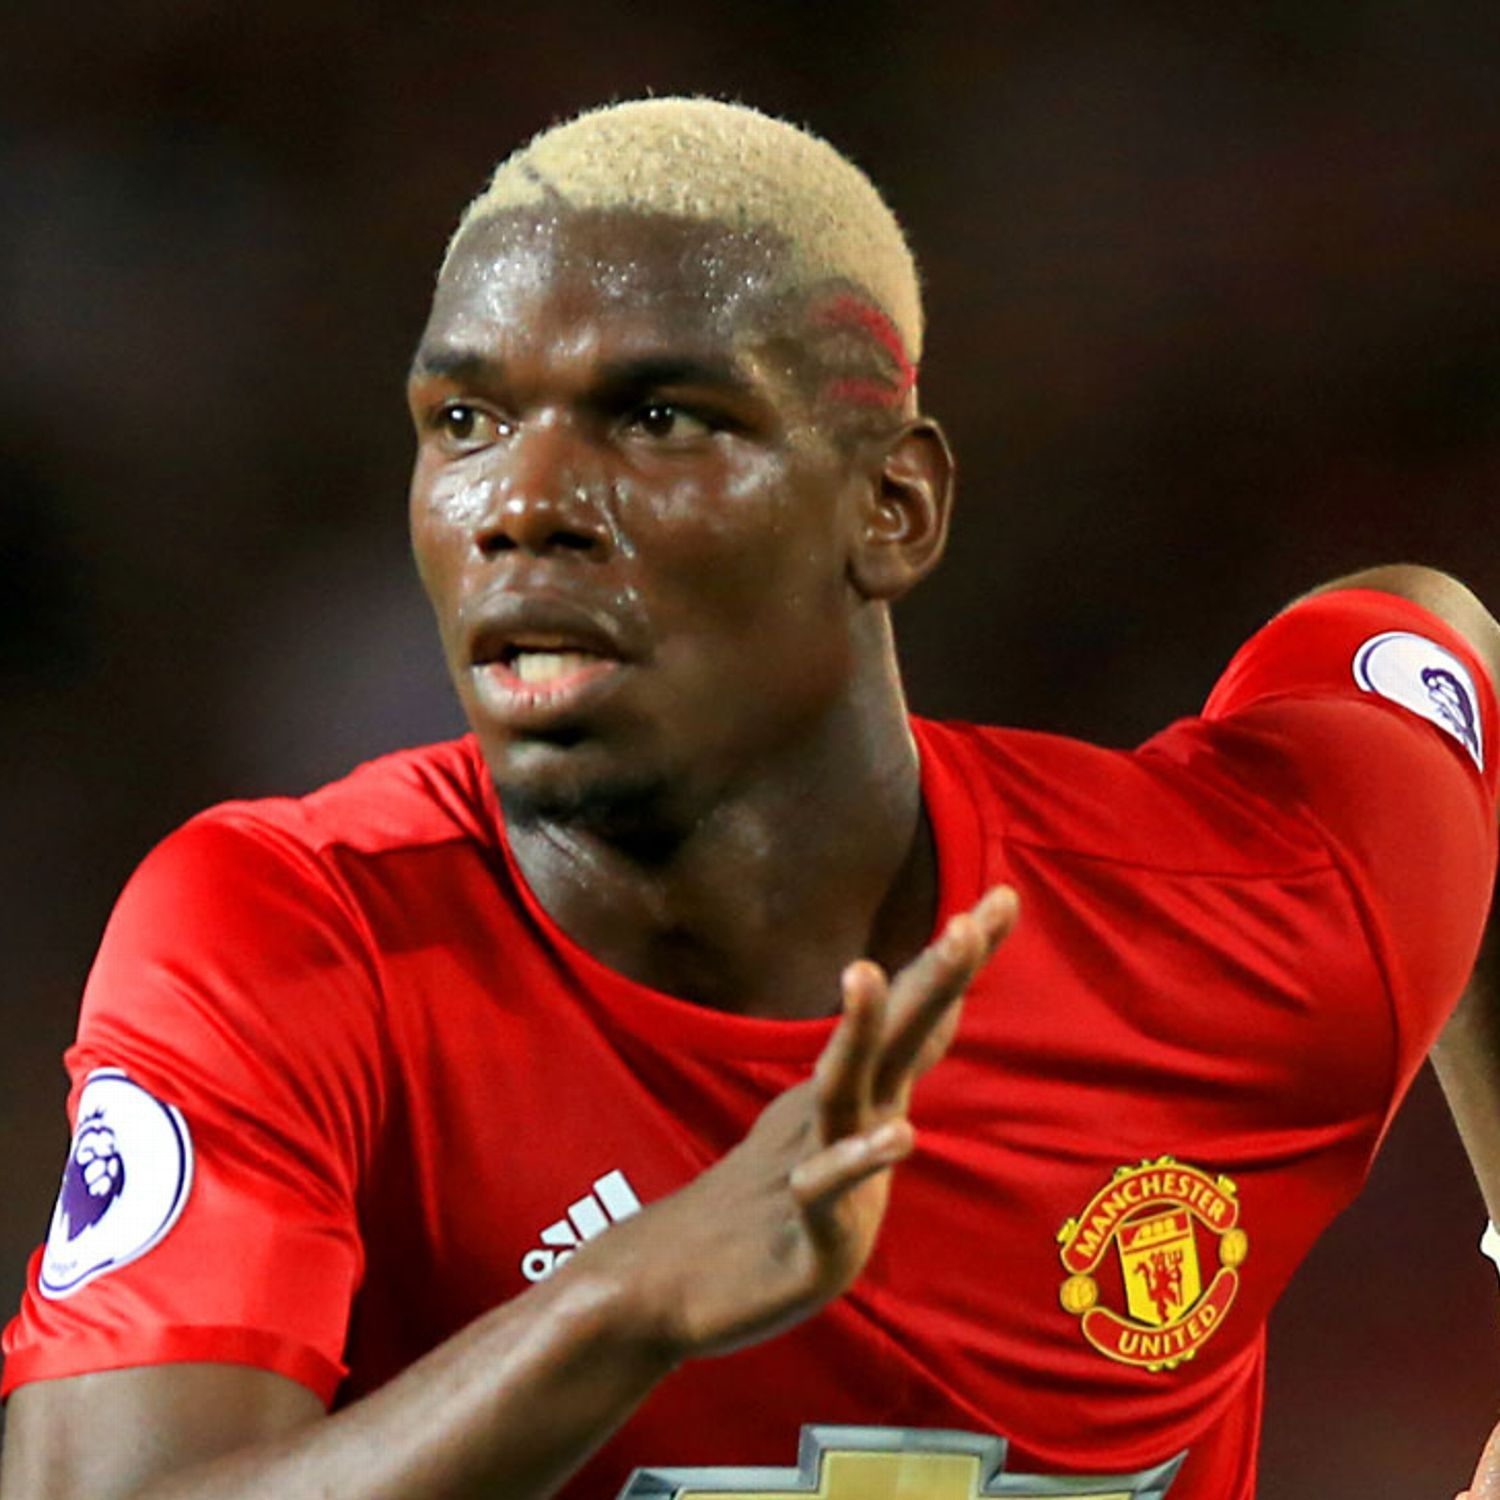 Manchester Uniteds Paul Pogba Offers Relationship Advice Following